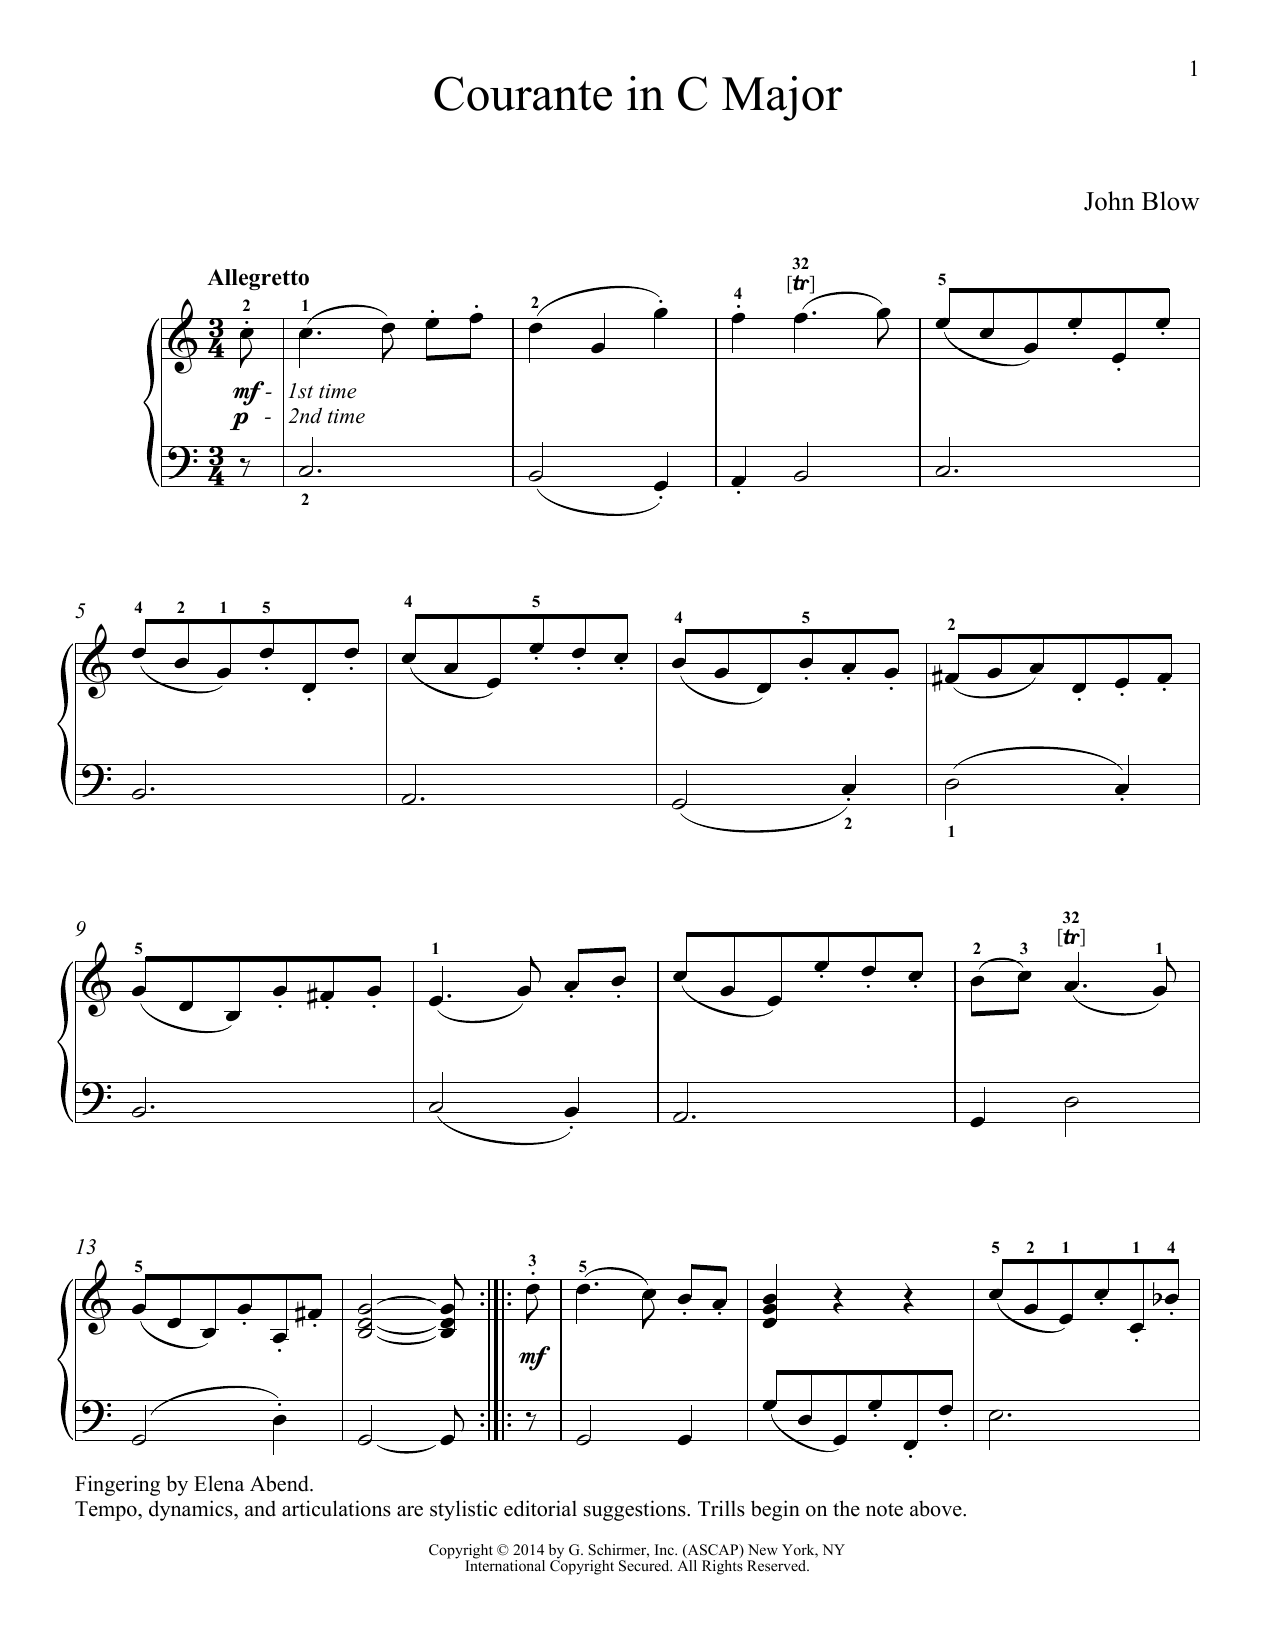 John Blow Courante sheet music notes and chords. Download Printable PDF.